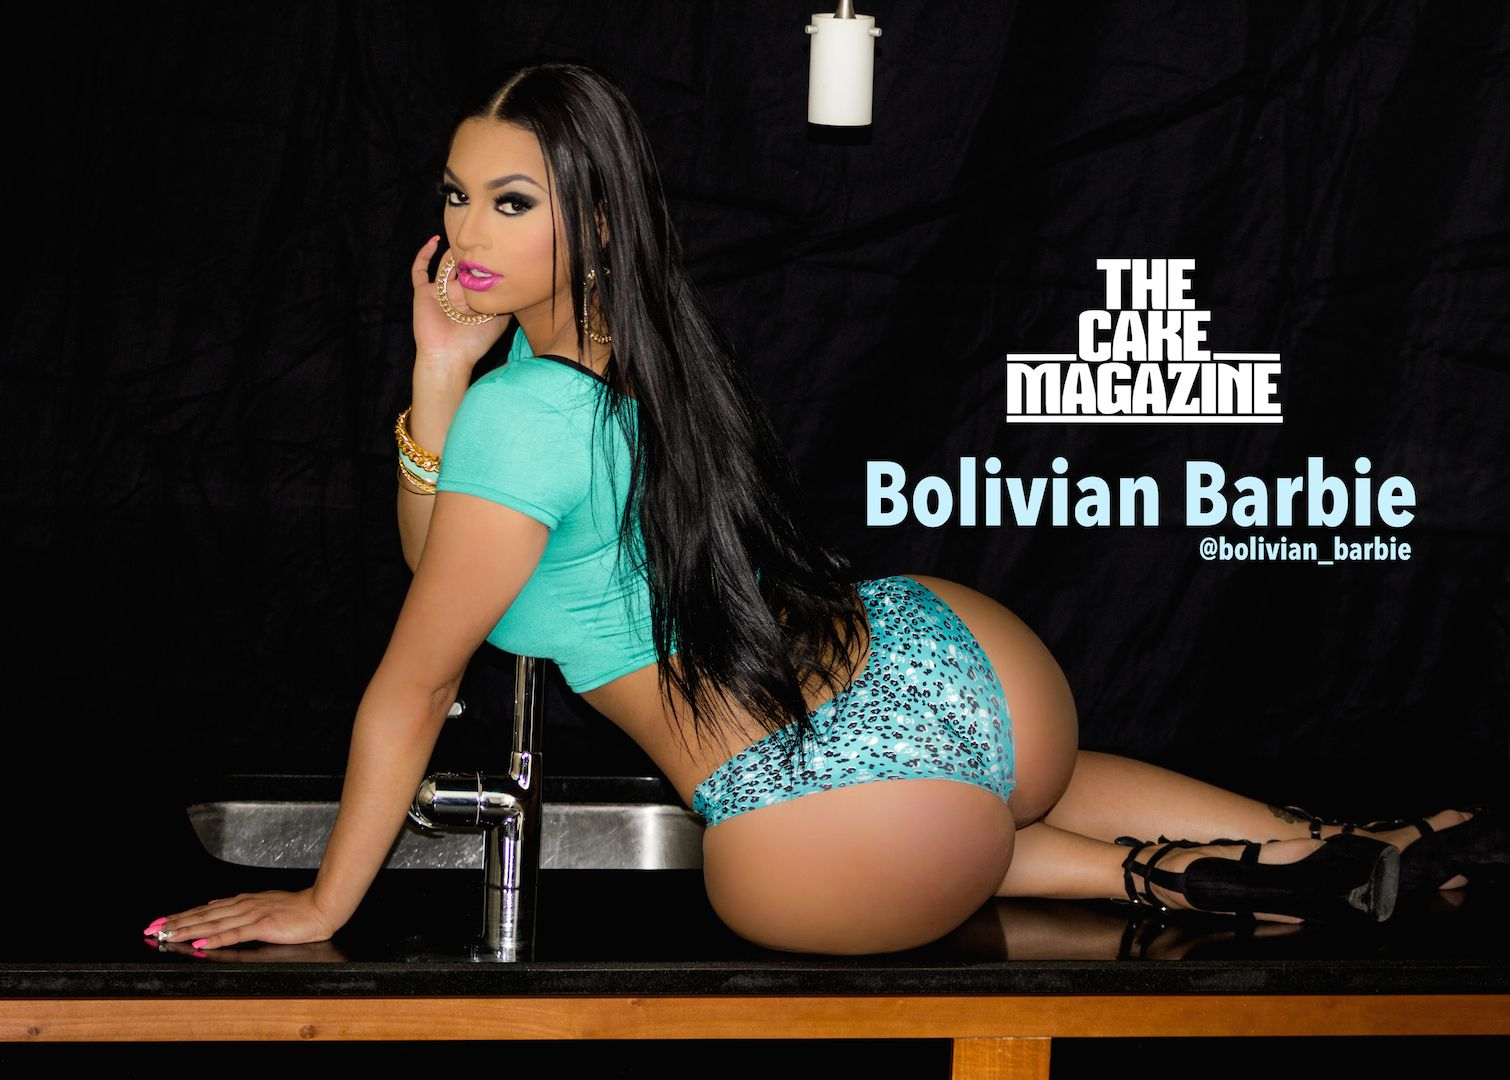 Bolivian Barbie The Cake Magazine